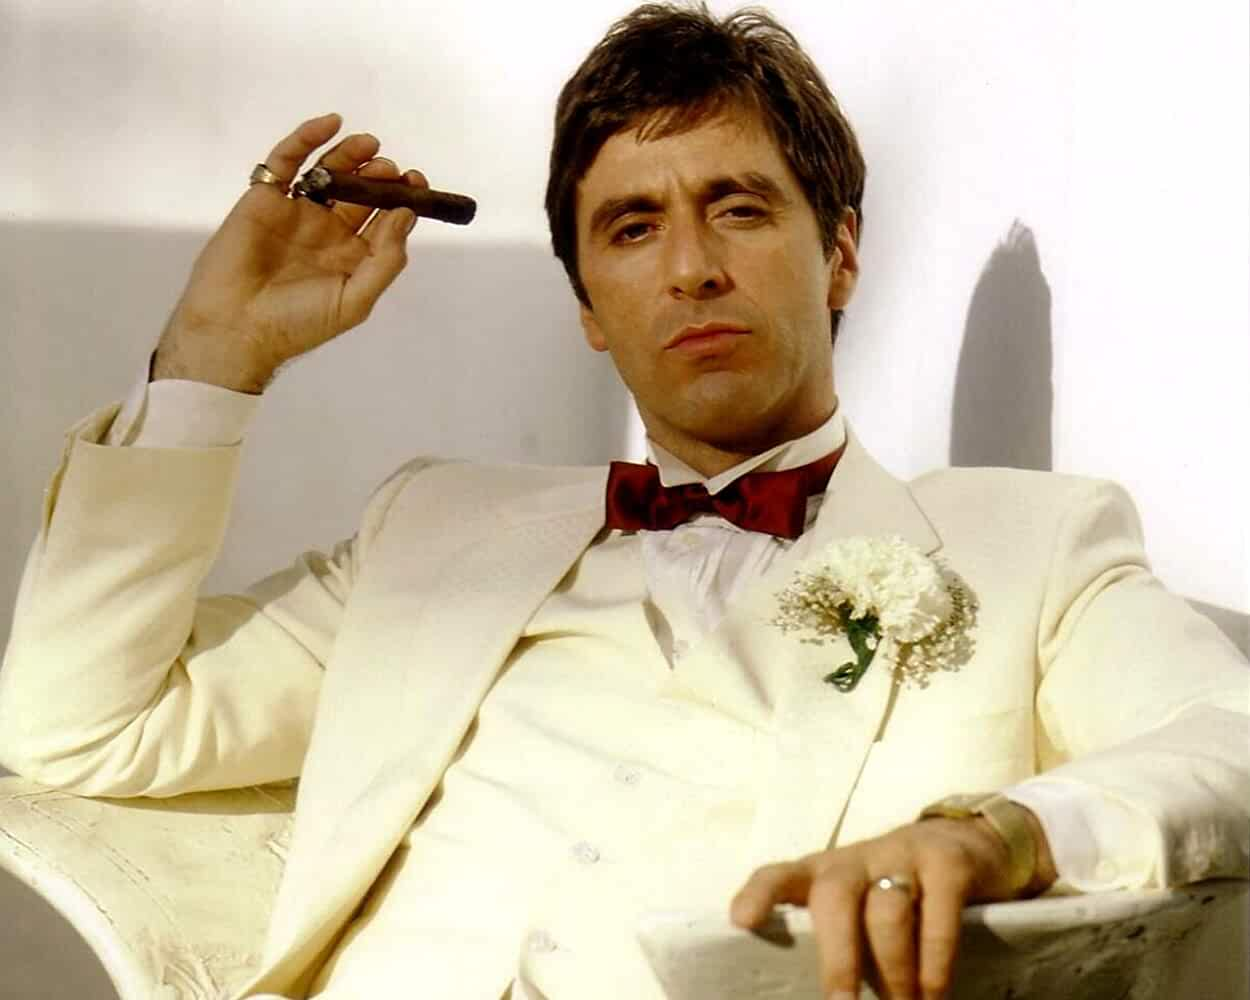 Al Pacino in Scarface 1983